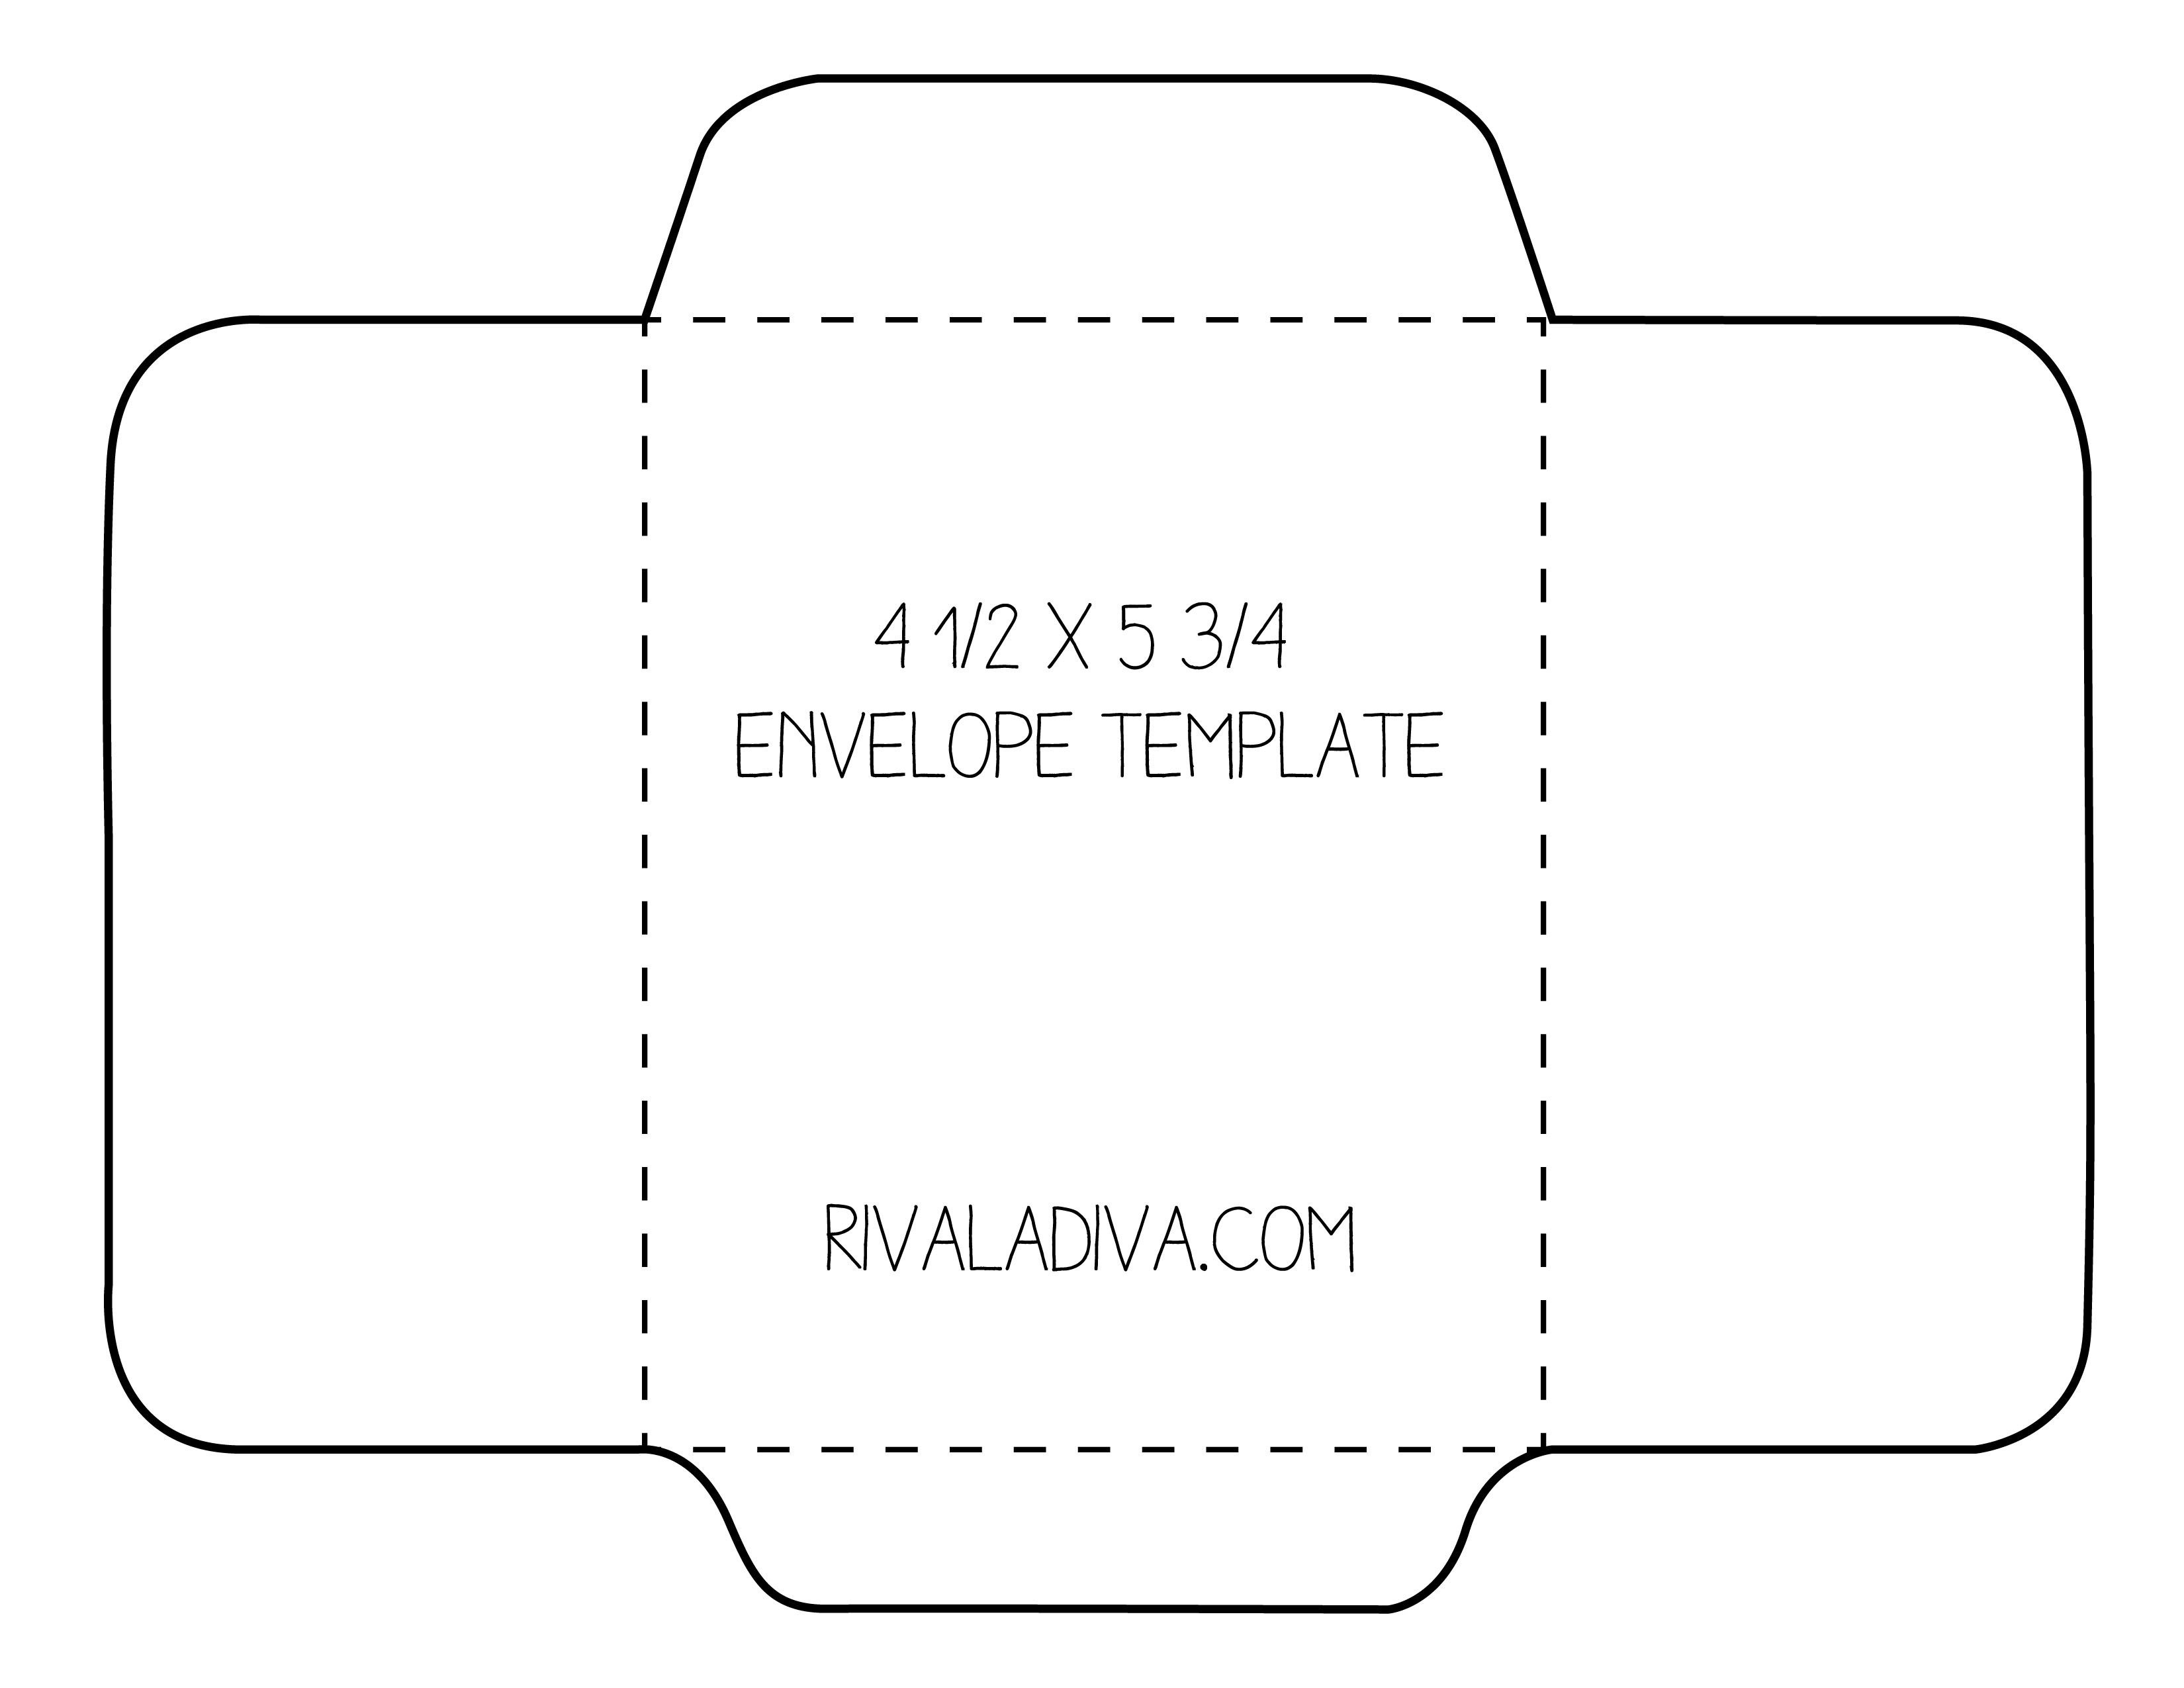 Envelope Template | Envelope Template For 8.5 X 11 Paper Diy - Free Printable Greeting Card Envelope Template